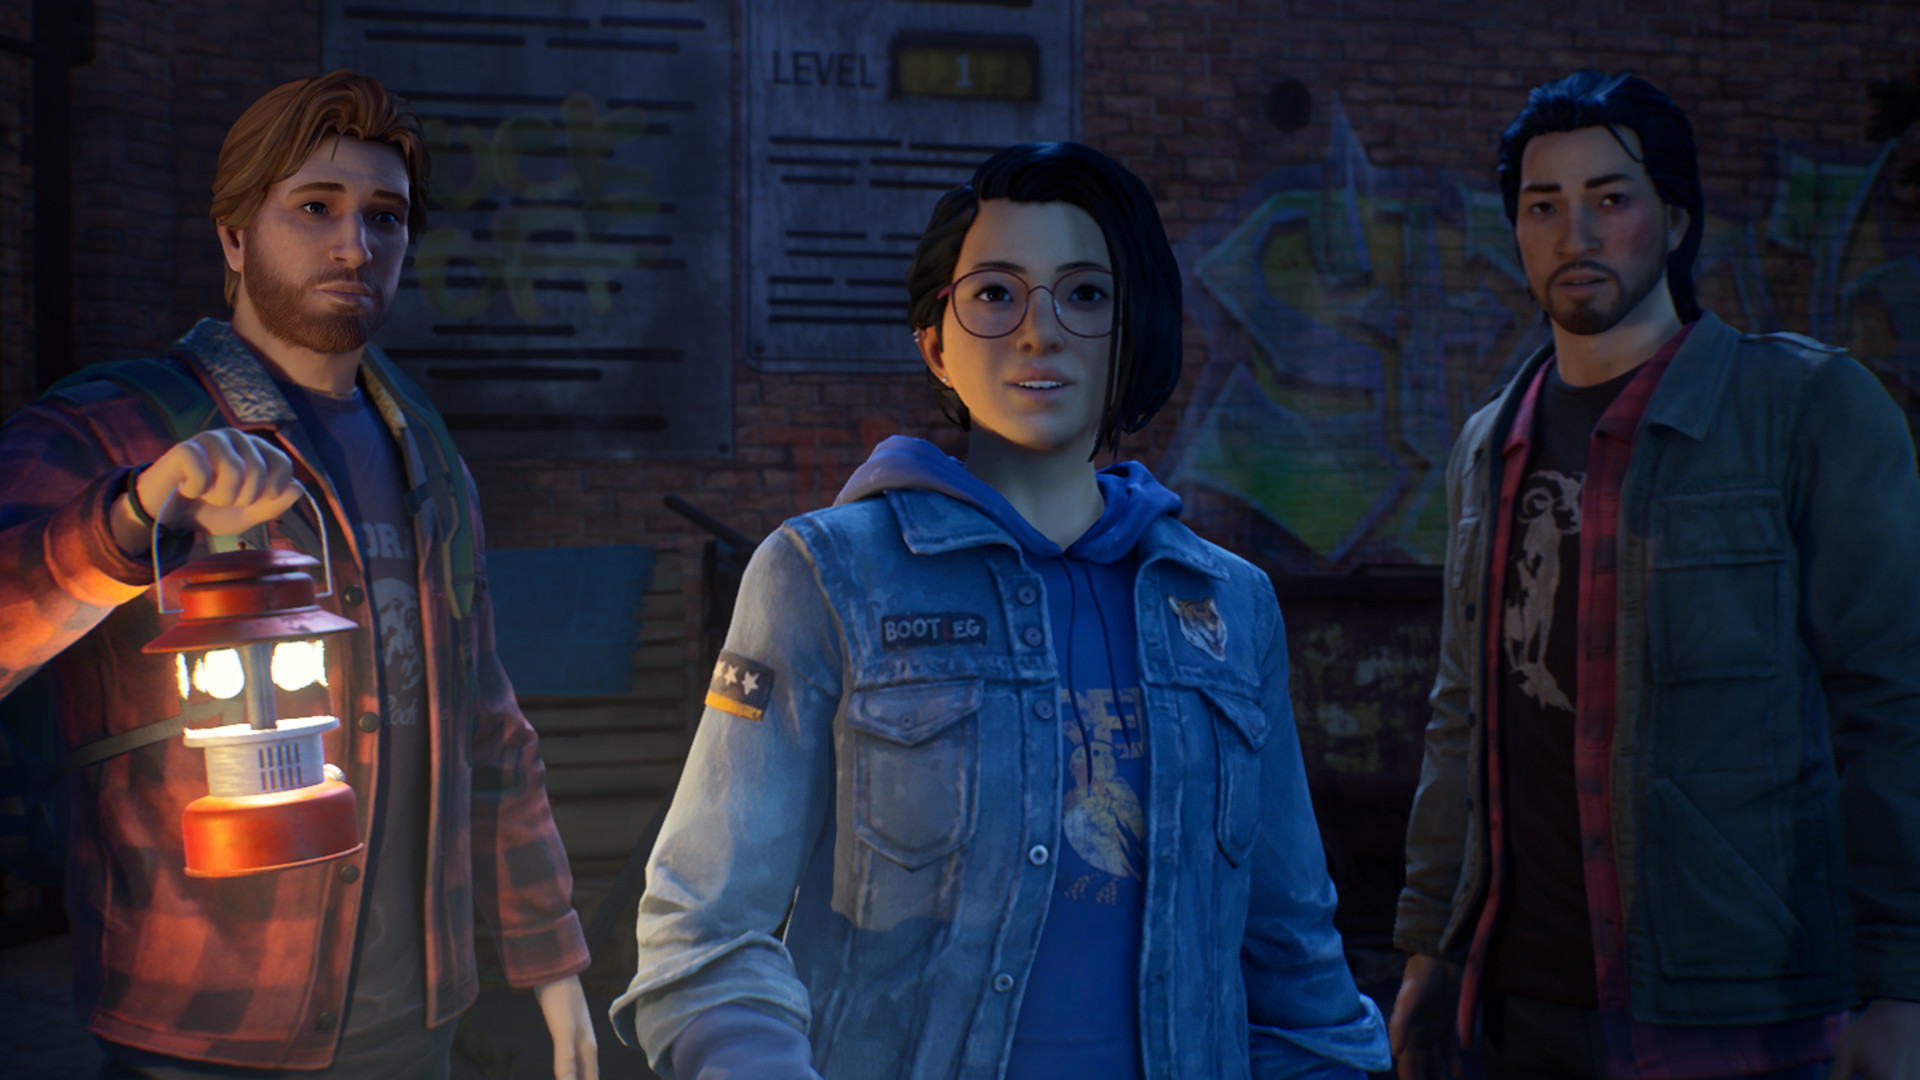 Life Is Strange: True Colors characters standing, looking at something, with one of them holding a lamp